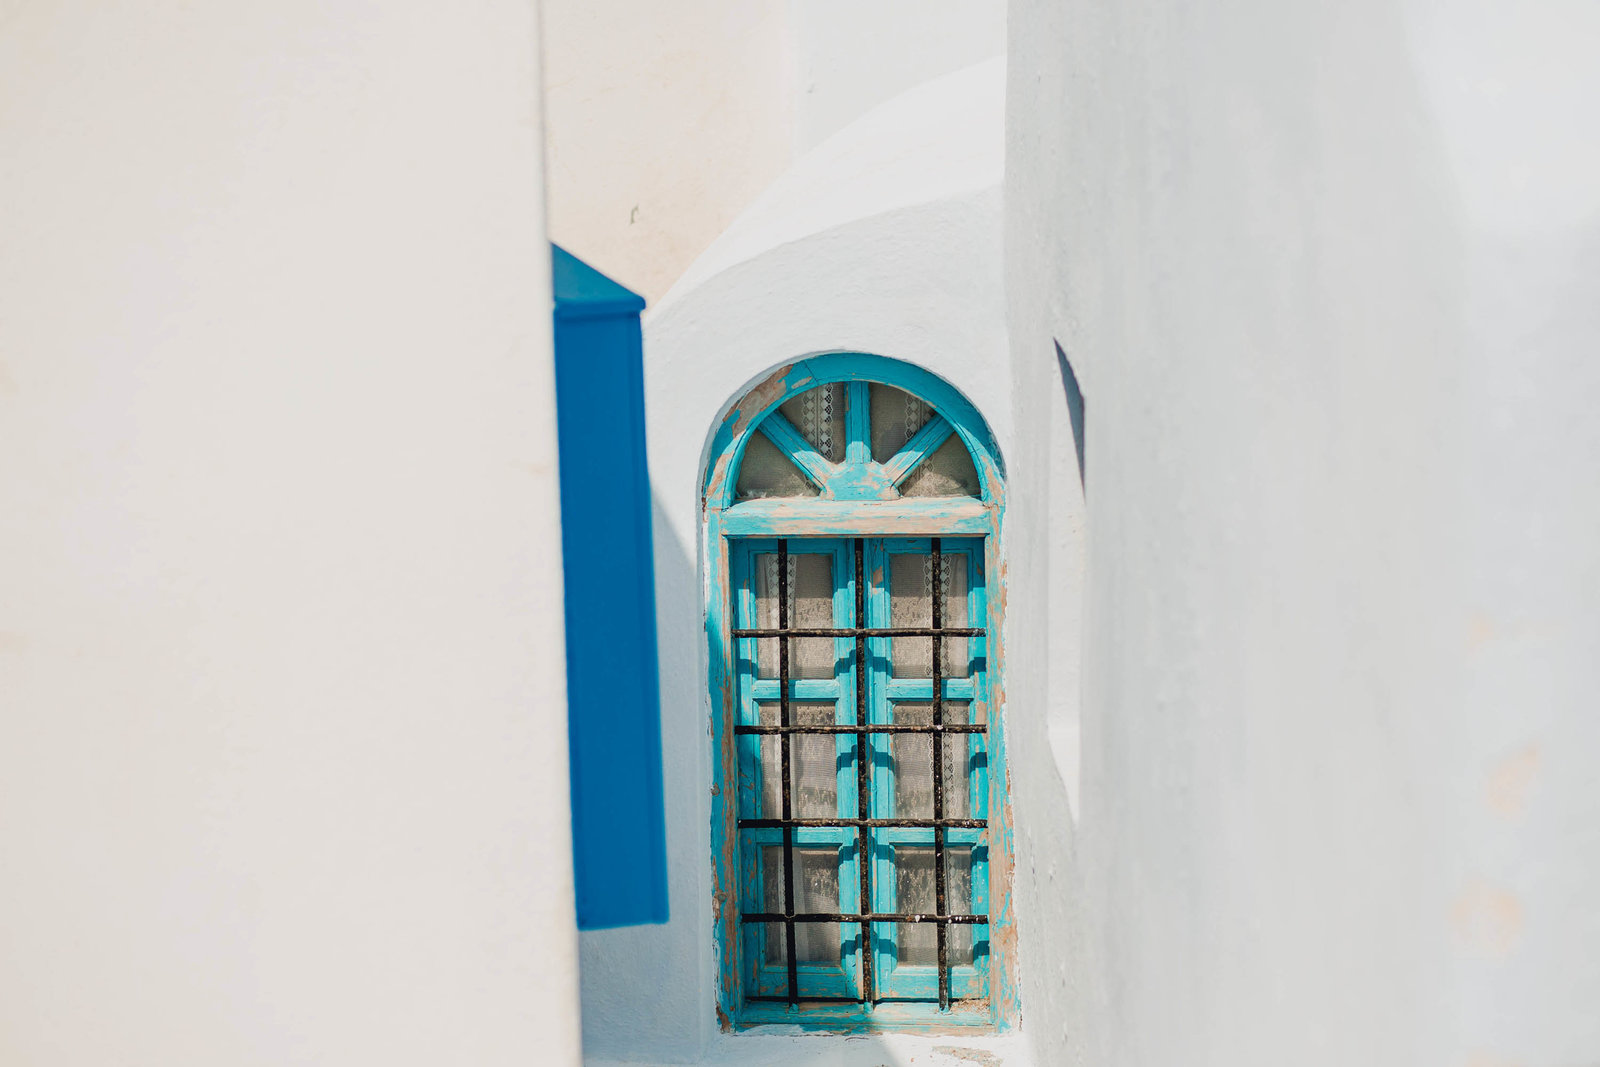 teal-window-pyrgos-destination-travel-santorini-wedding-kate-timbers-photo-2705